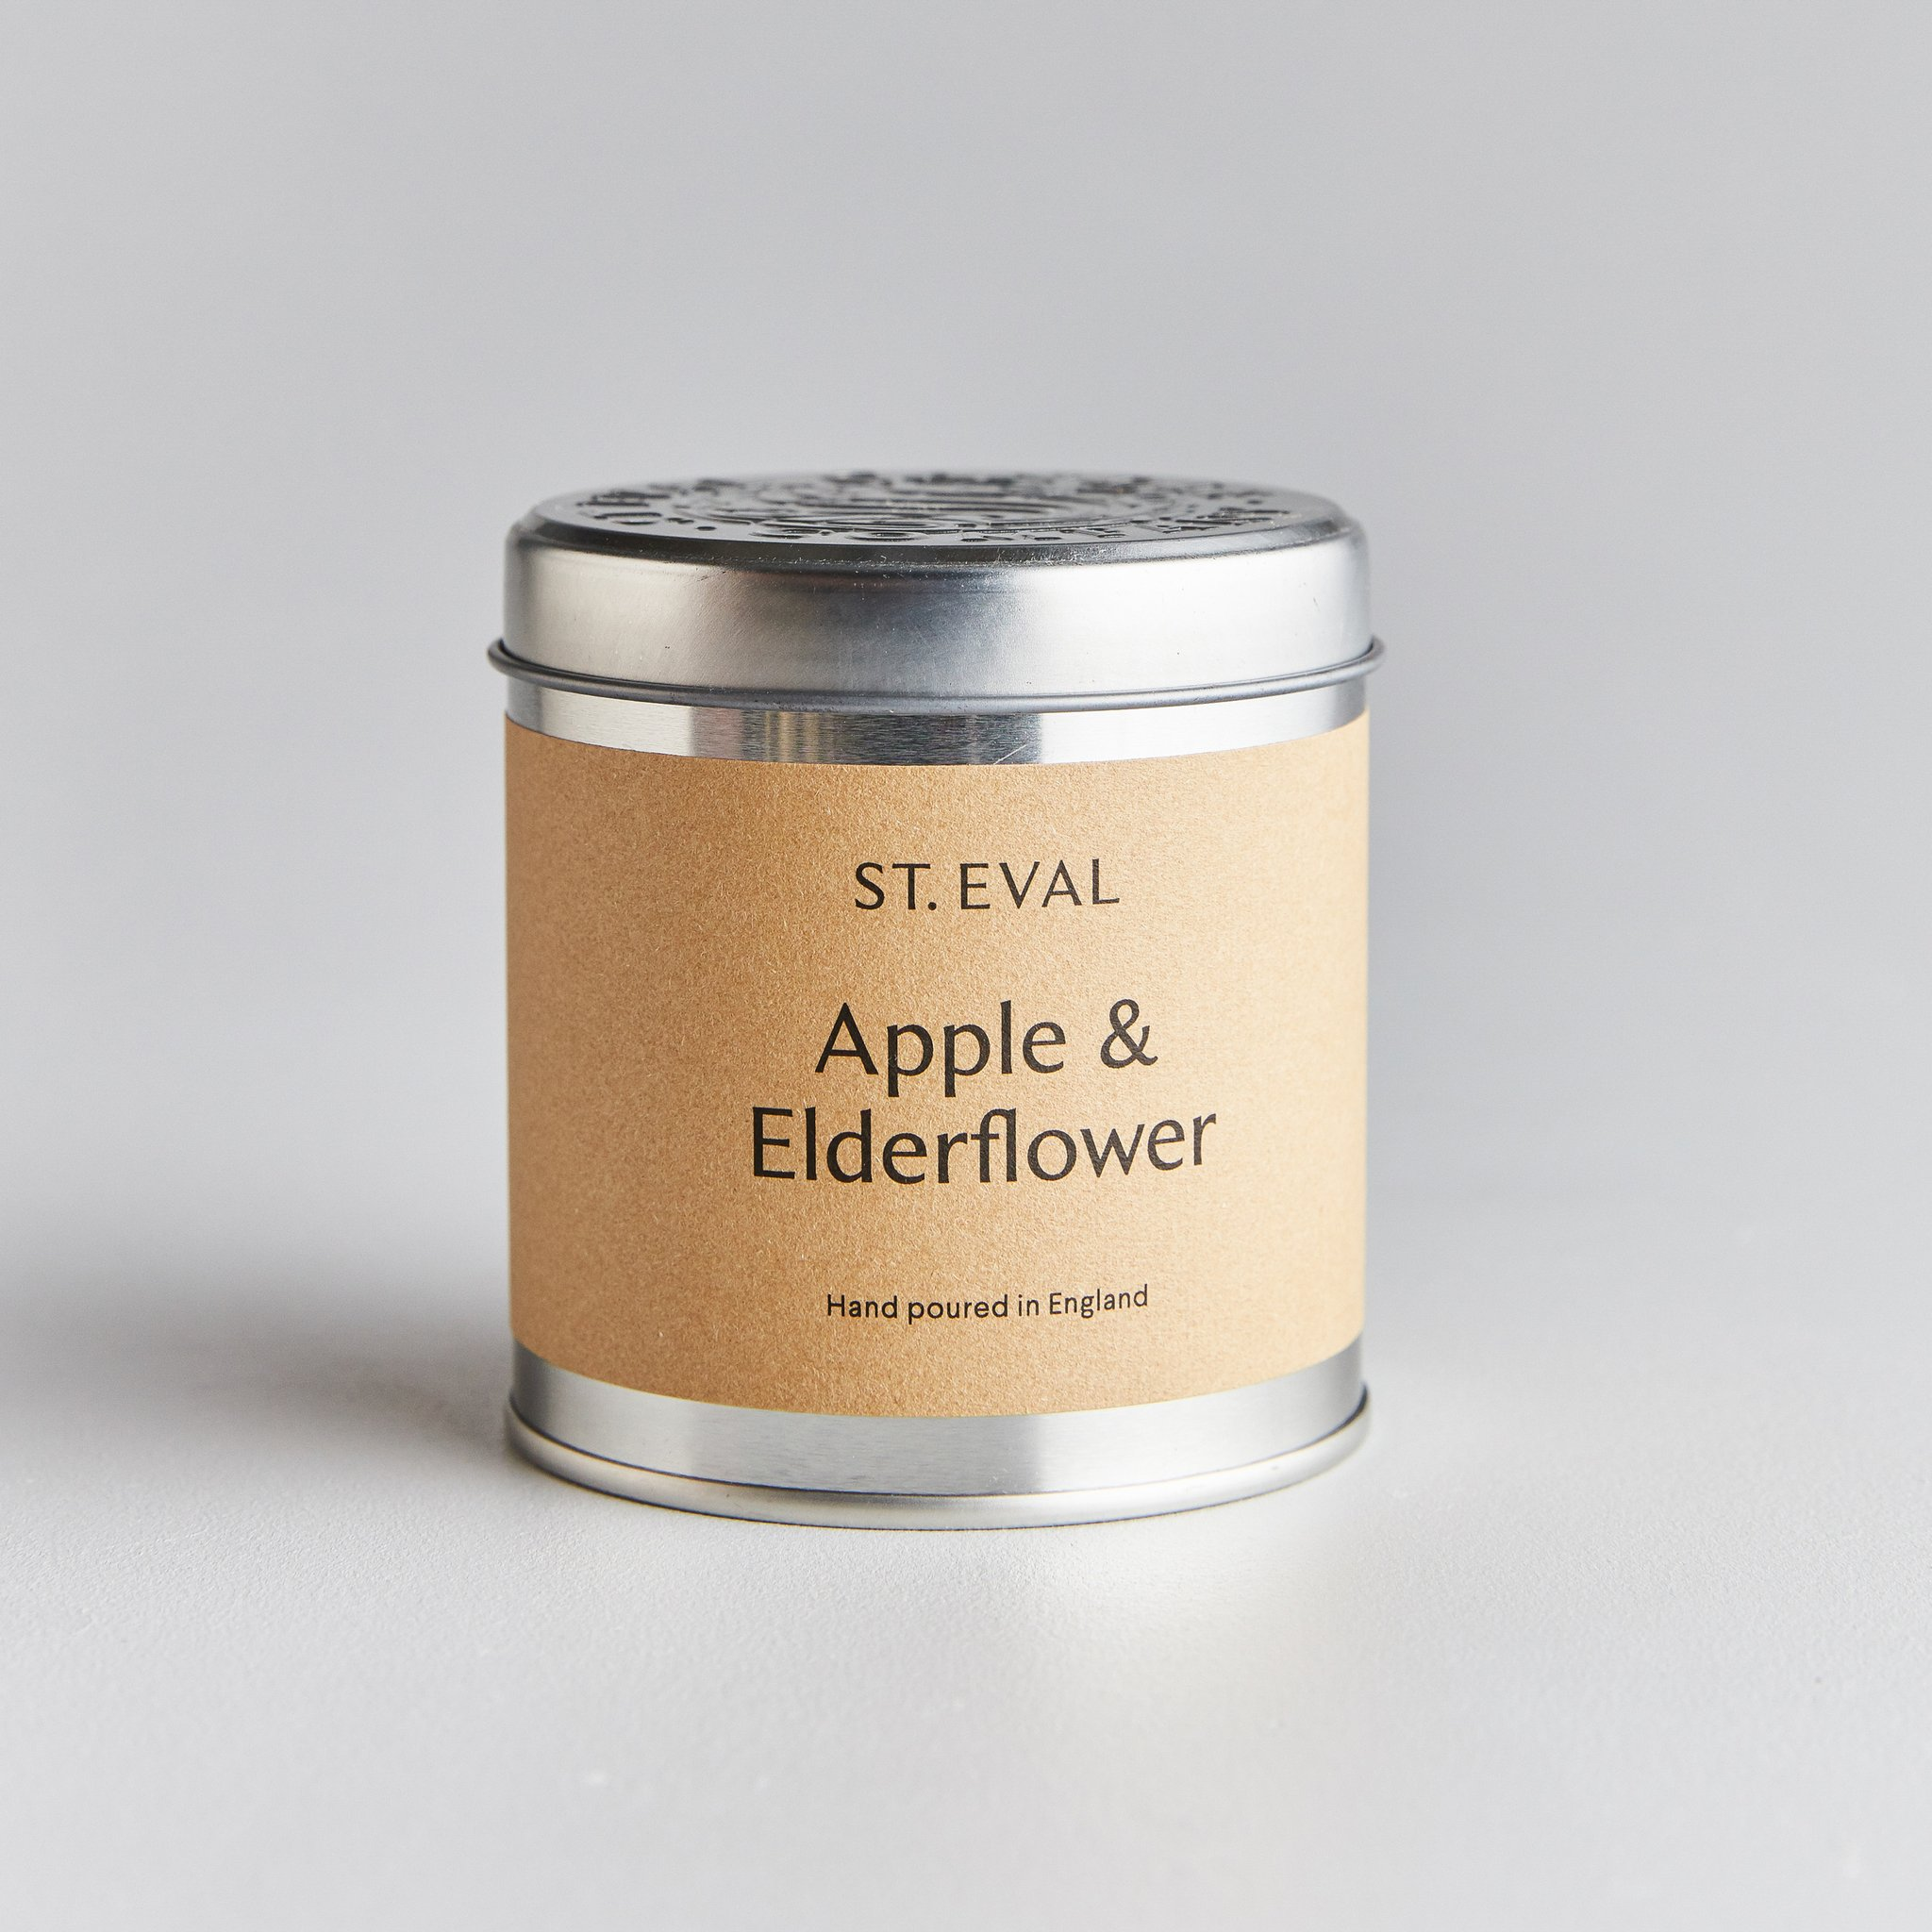 St Eval Candle Tin - Apple & Elderflower